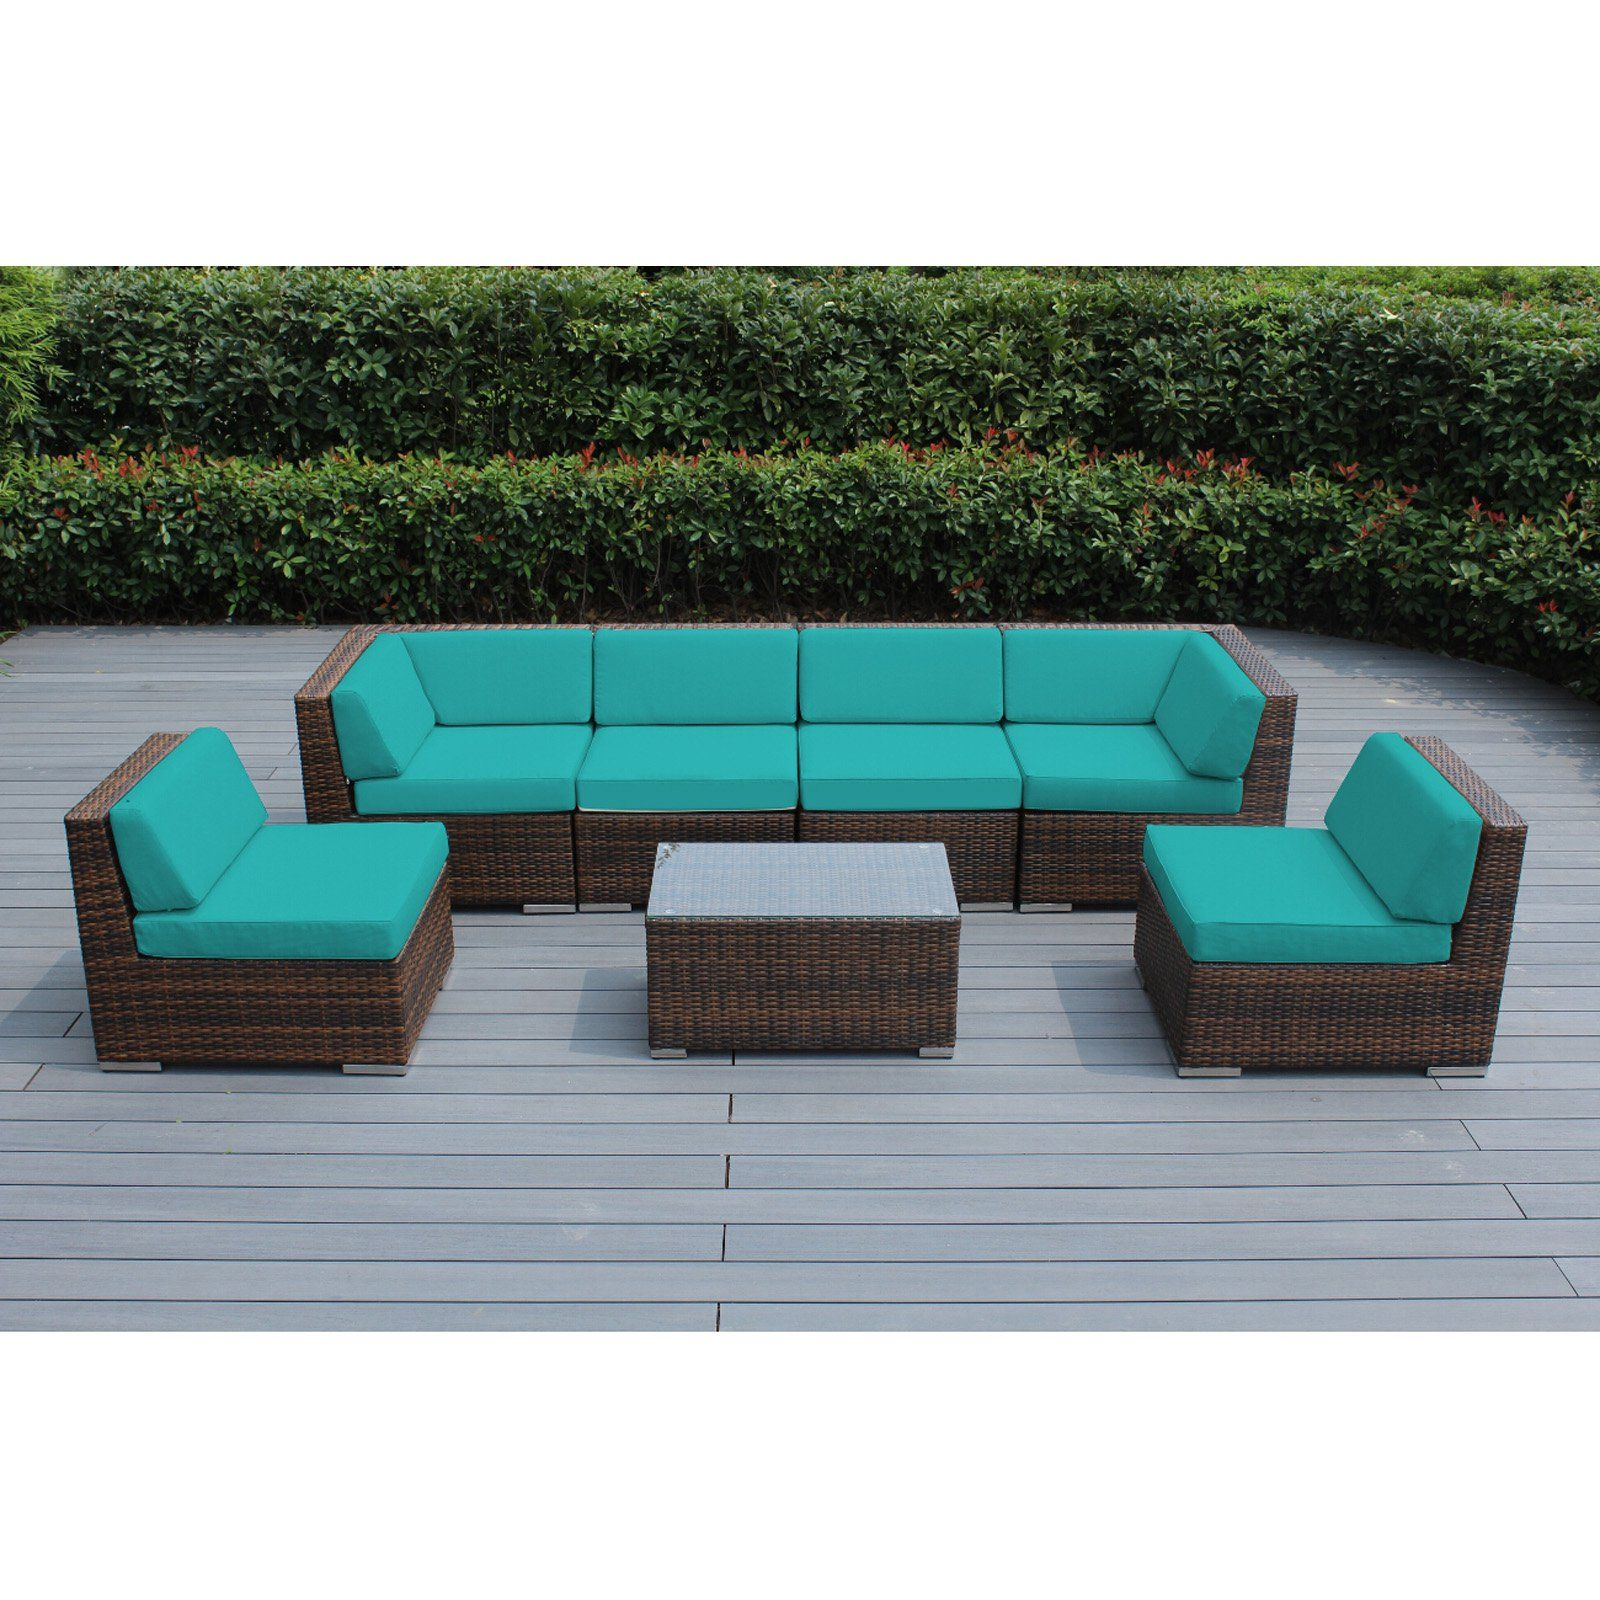 Best Outdoor Ohana All Weather Wicker 7 Piece Sectional Patio 640 x 480